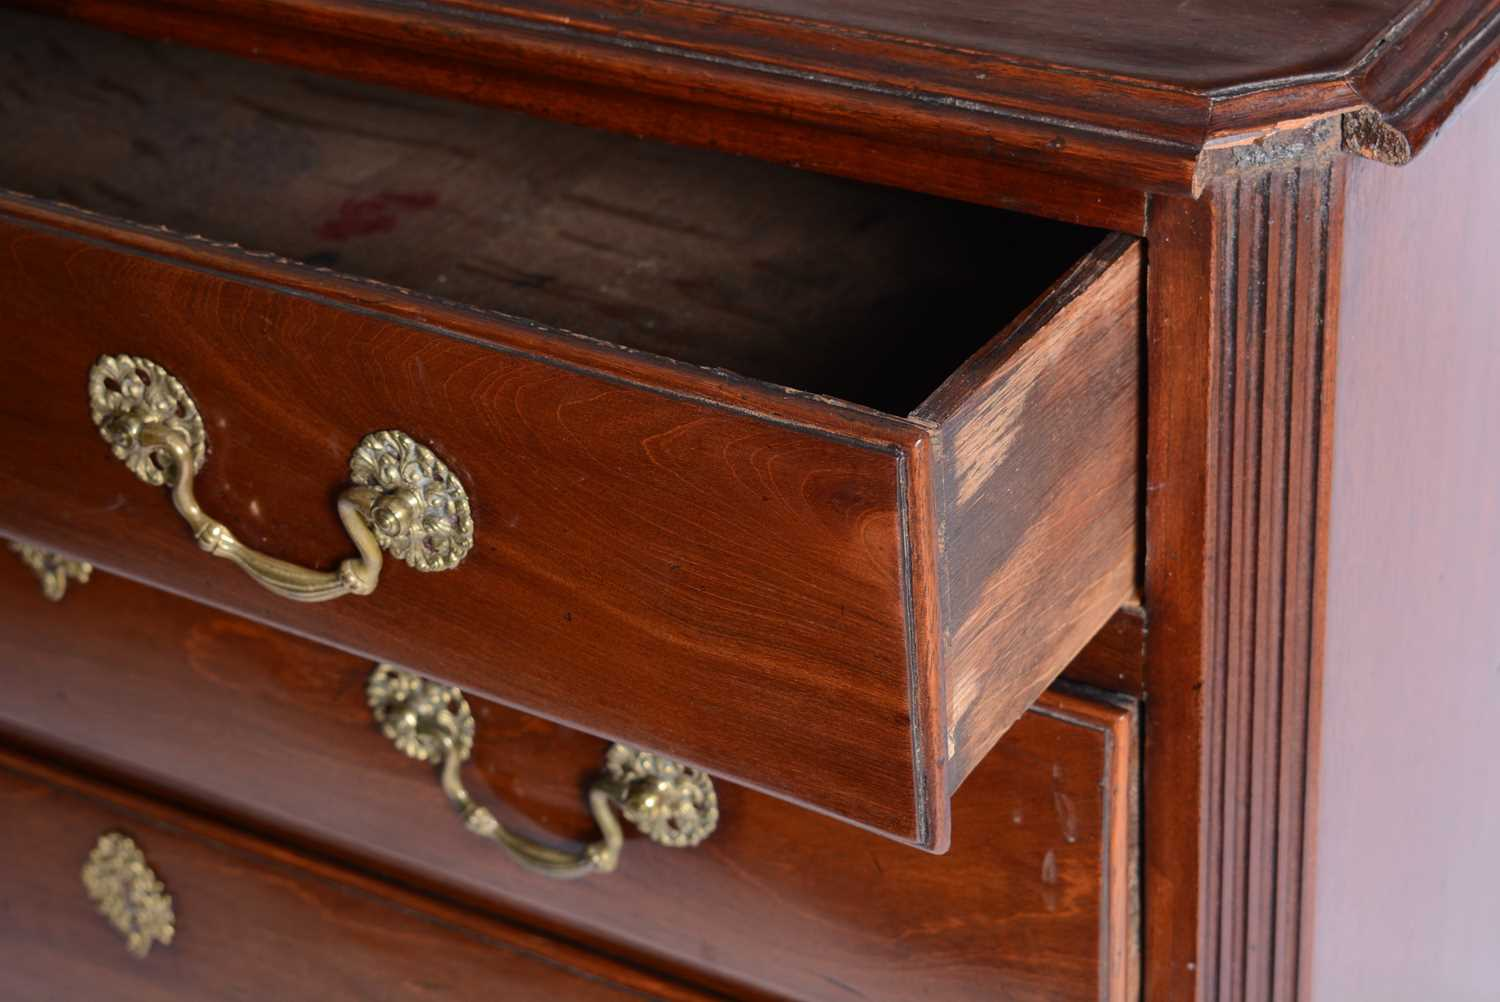 Late George III mahogany chest of drawers - Image 3 of 5